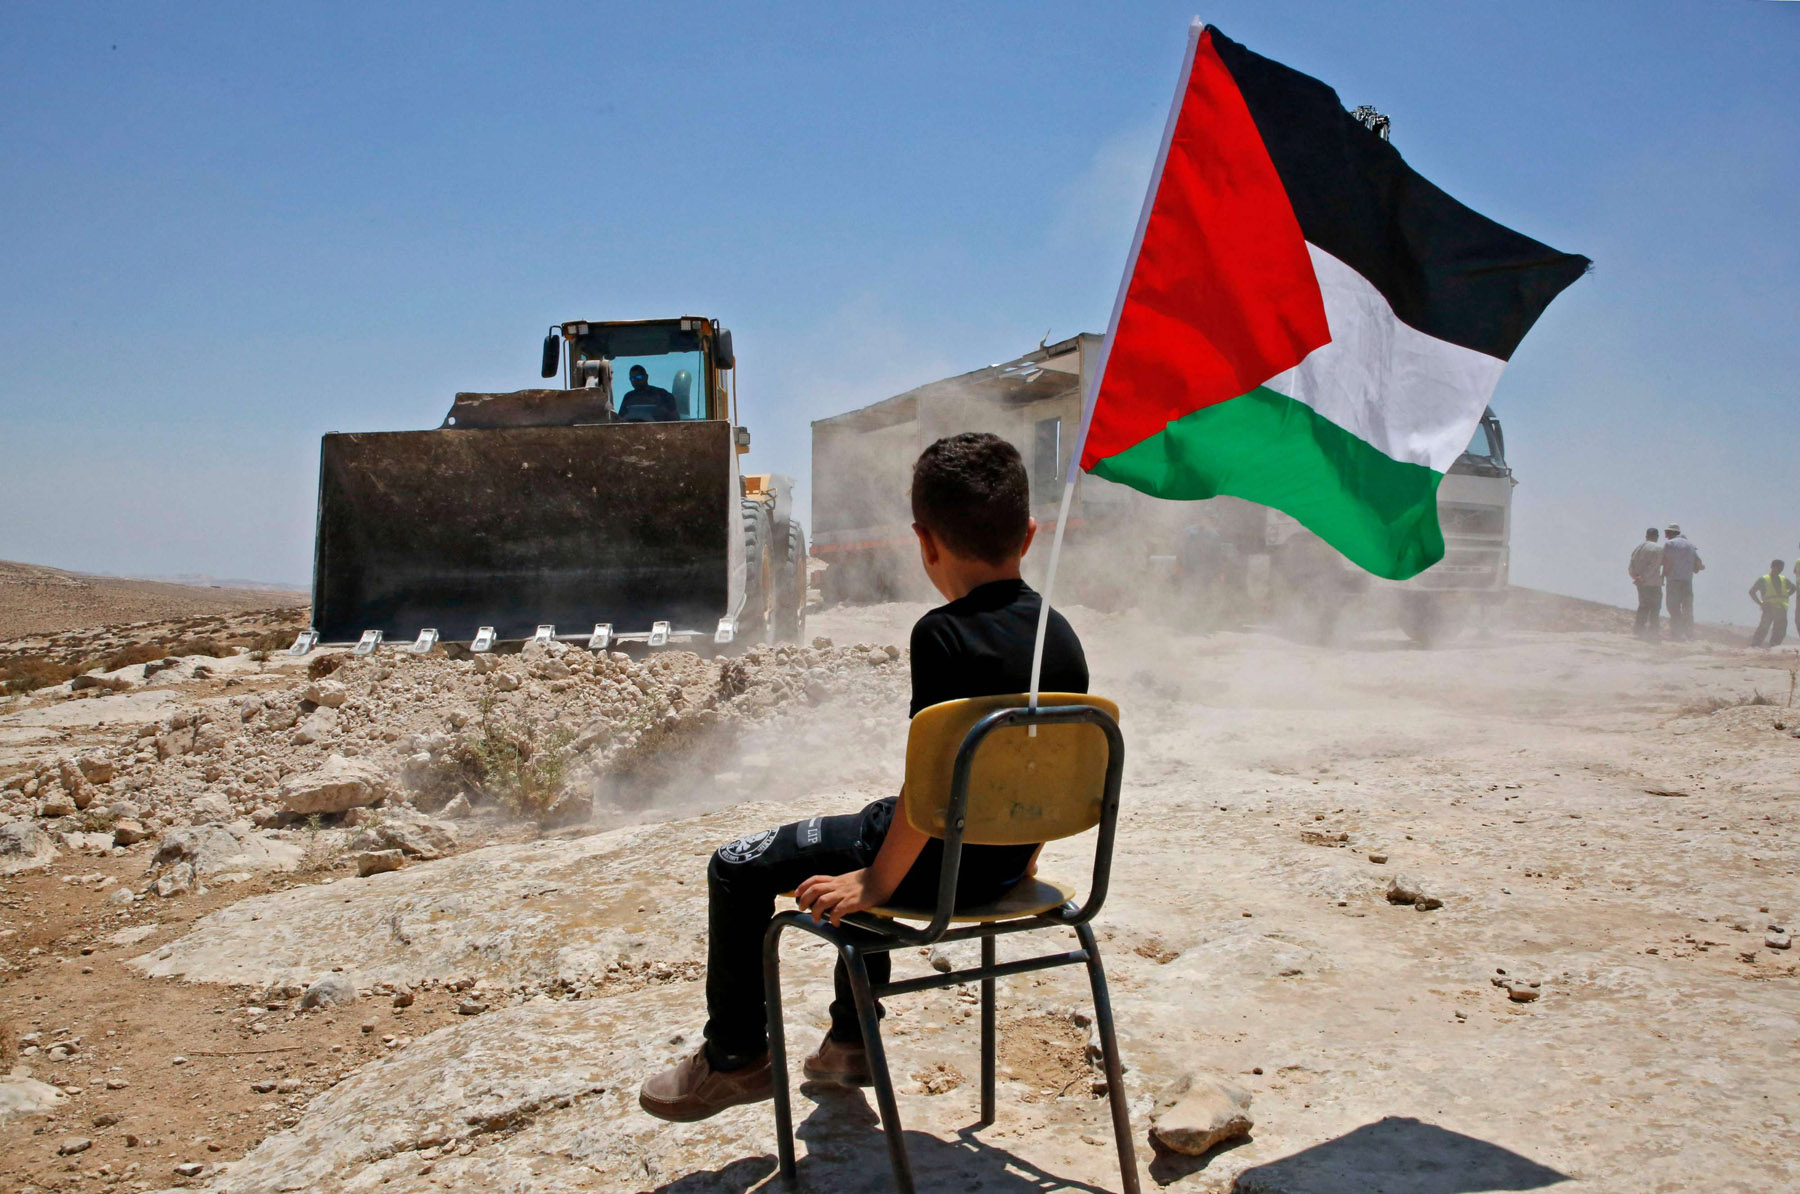 A Palestinian boy sits on a chair as Israeli bulldozers demolish a school site in the village of Yatta, south of Hebron, last July. (AFP)